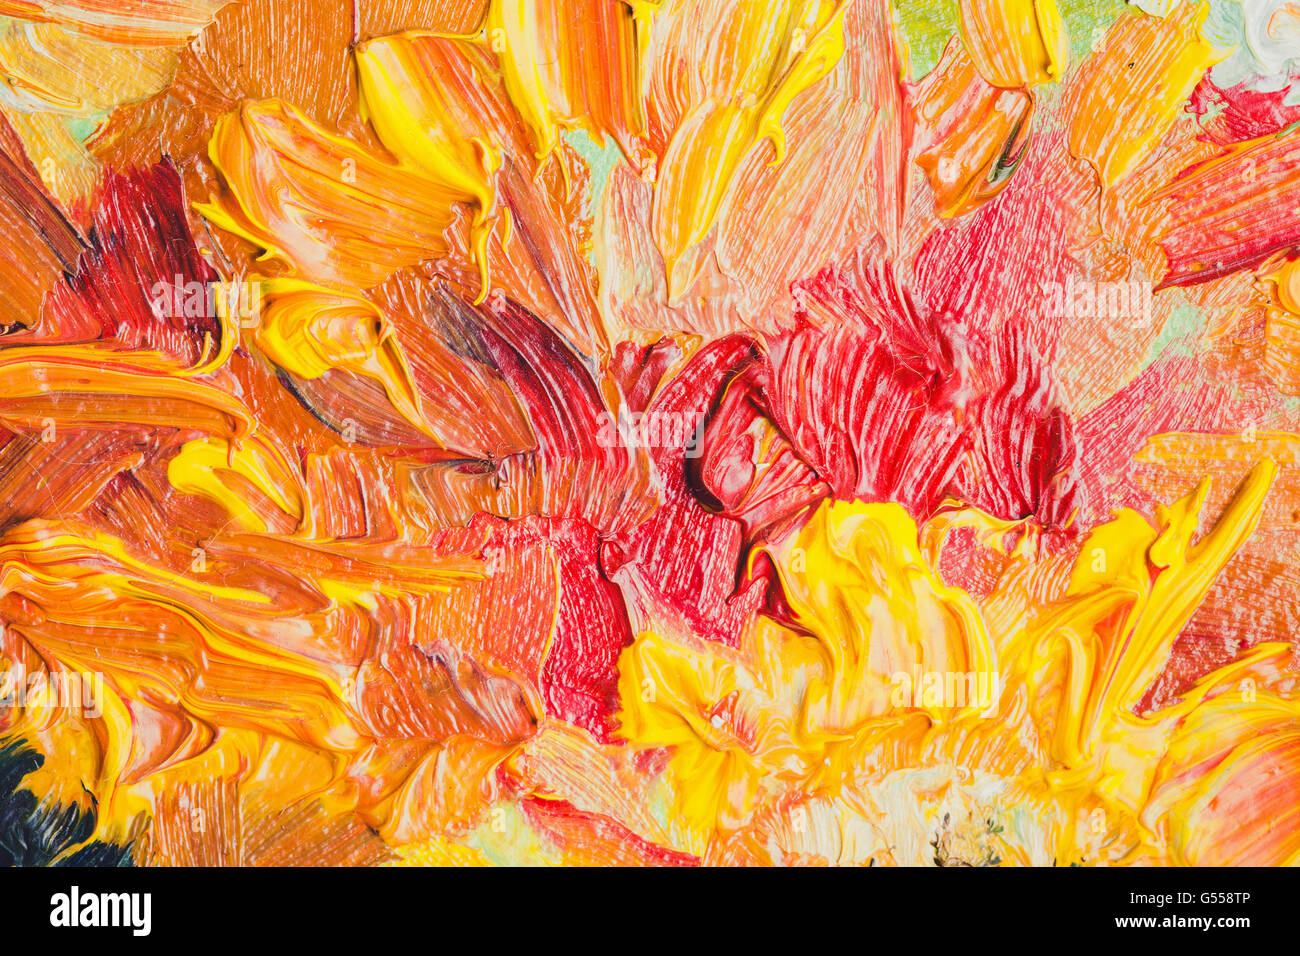 Oil painting close-up fragment, strokes of abstract colorful flowers ...